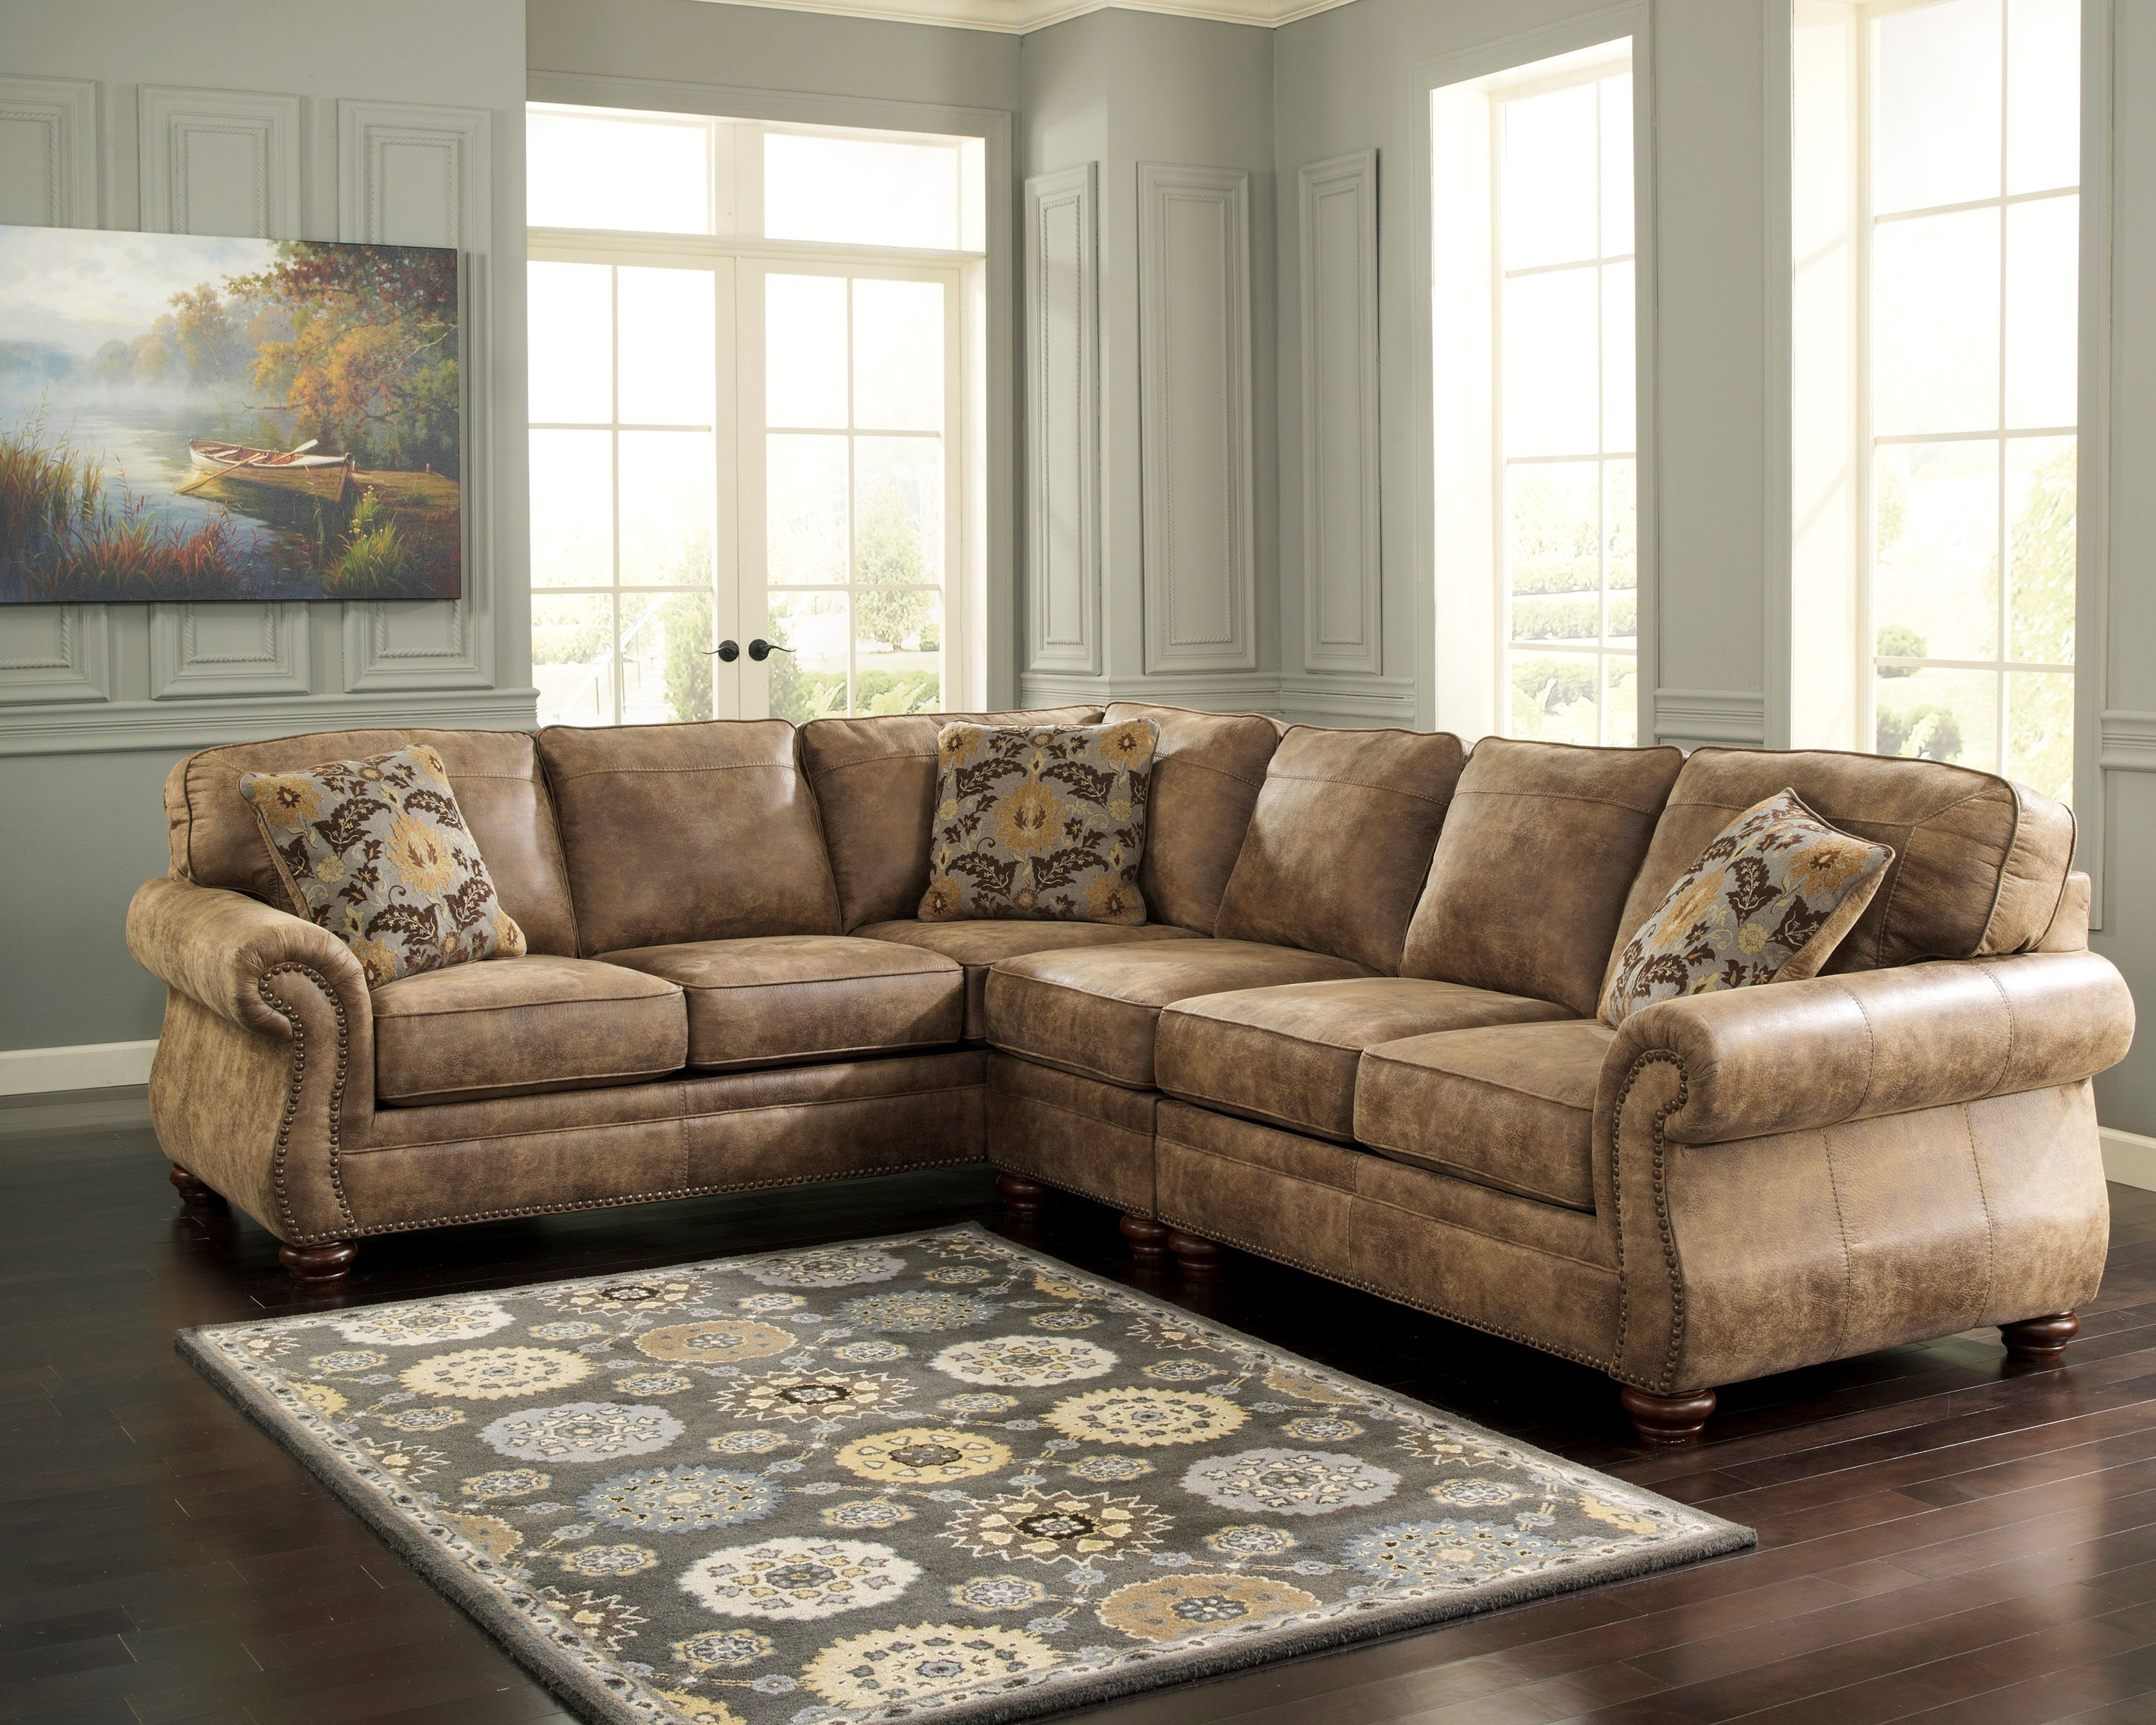 Laf Sofa Raf Loveseat | Baci Living Room With Regard To Turdur 2 Piece Sectionals With Laf Loveseat (Image 8 of 25)